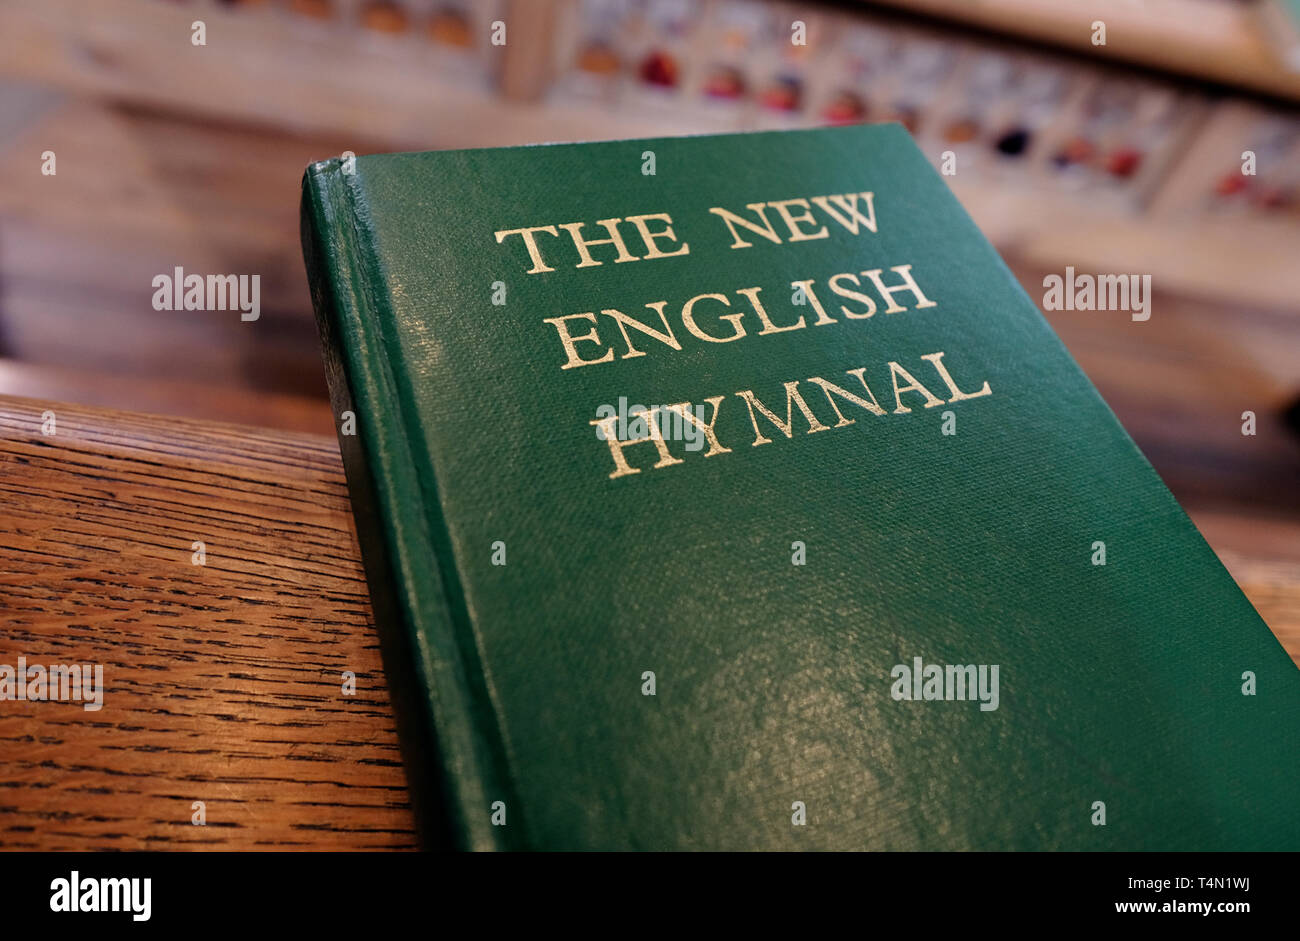 the new english hymnal hymn book on church pew, norfolk, england - Stock Image